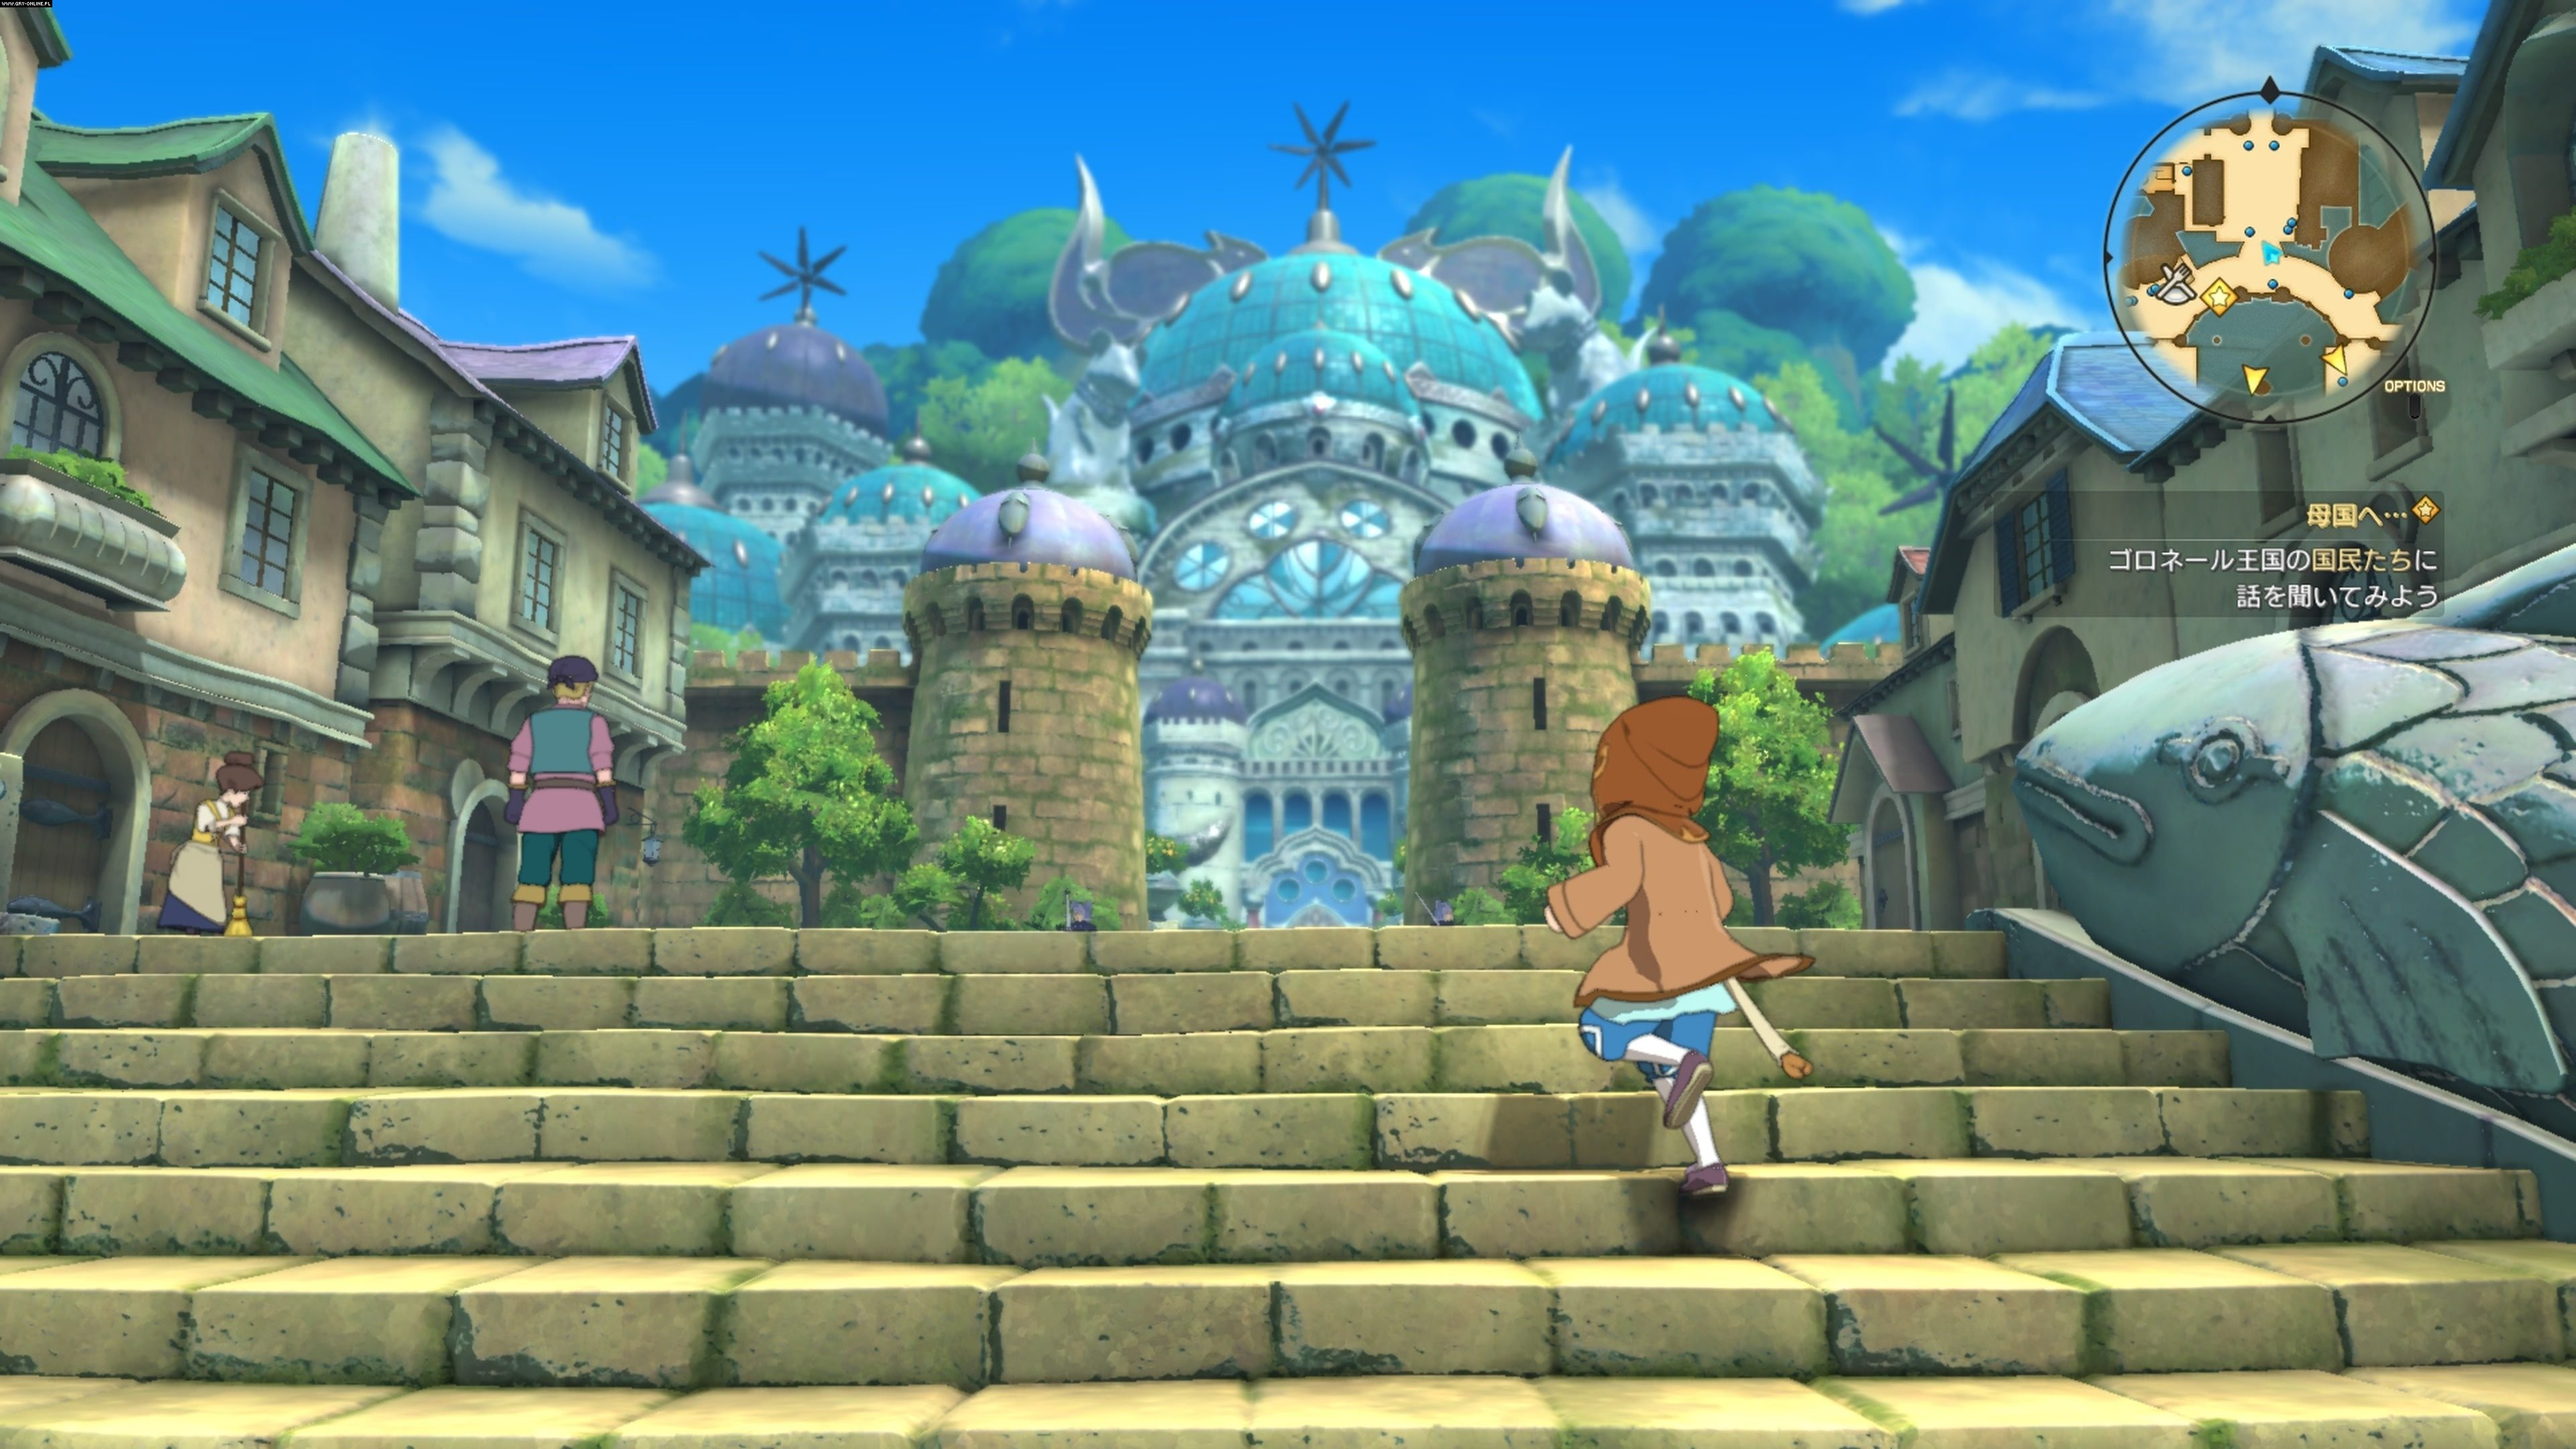 Ni no Kuni II: Revenant Kingdom PC, PS4 Gry Screen 51/112, Level 5, Bandai Namco Entertainment